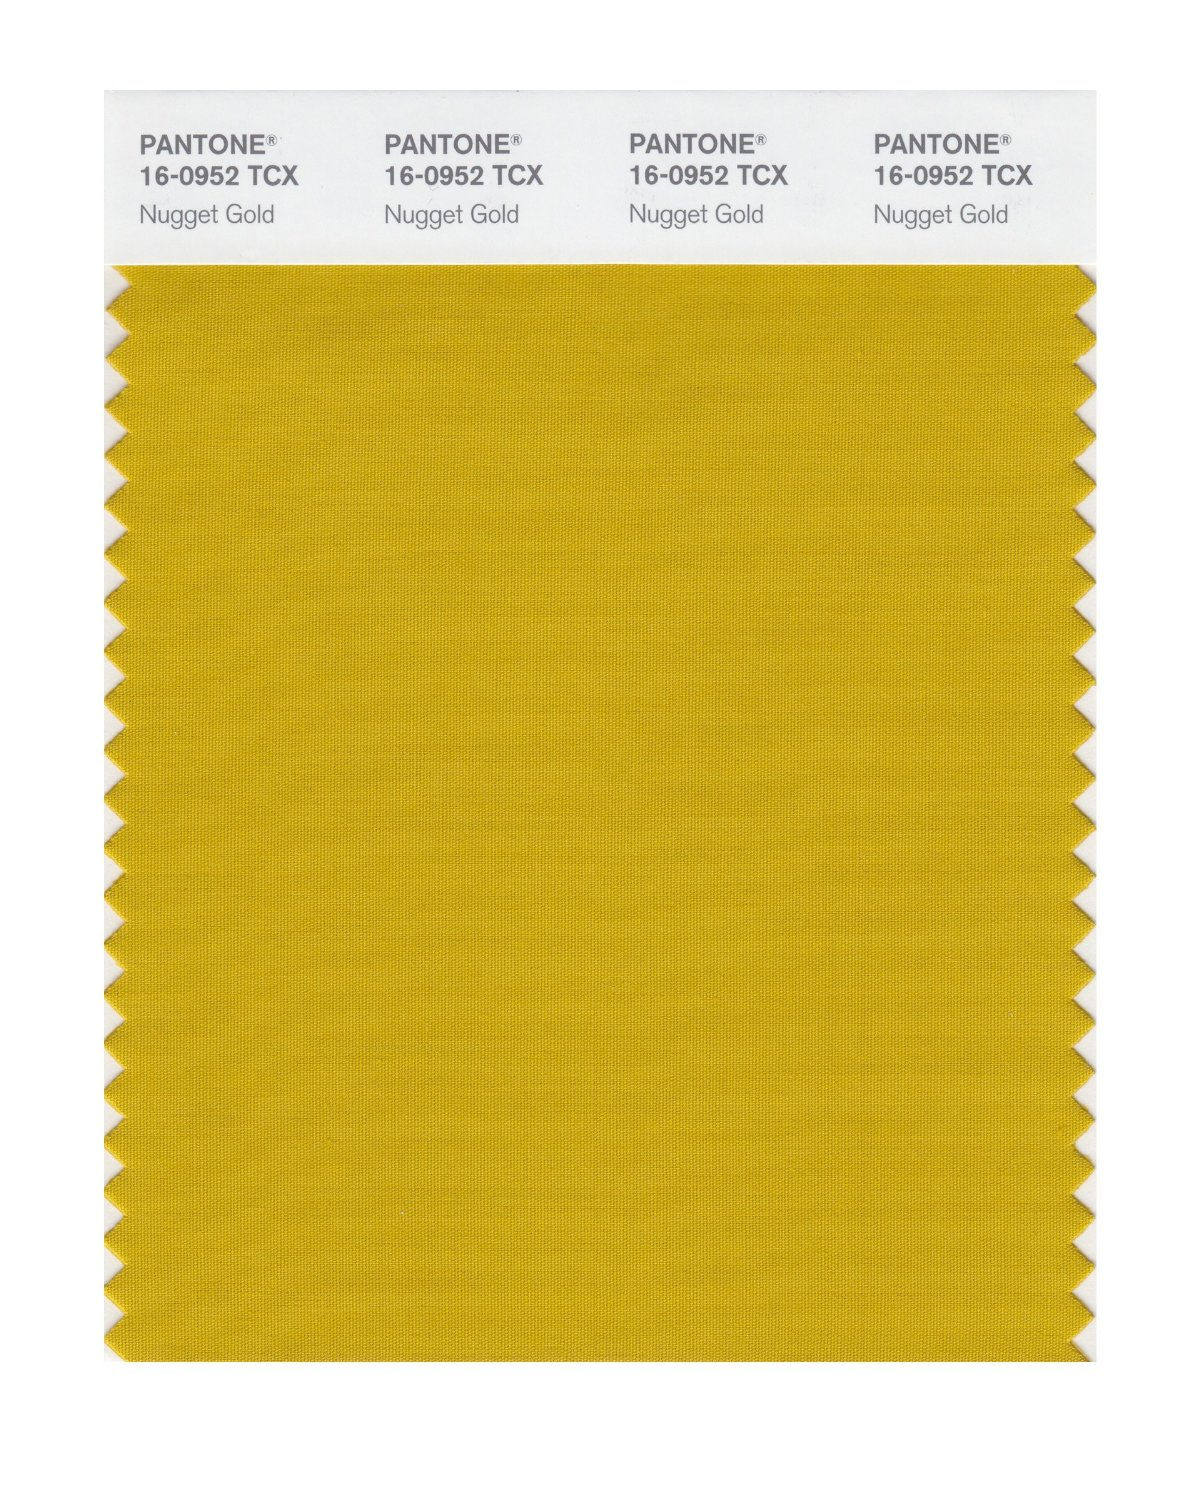 Pantone Smart Swatch 16-0952 Nugget Gold